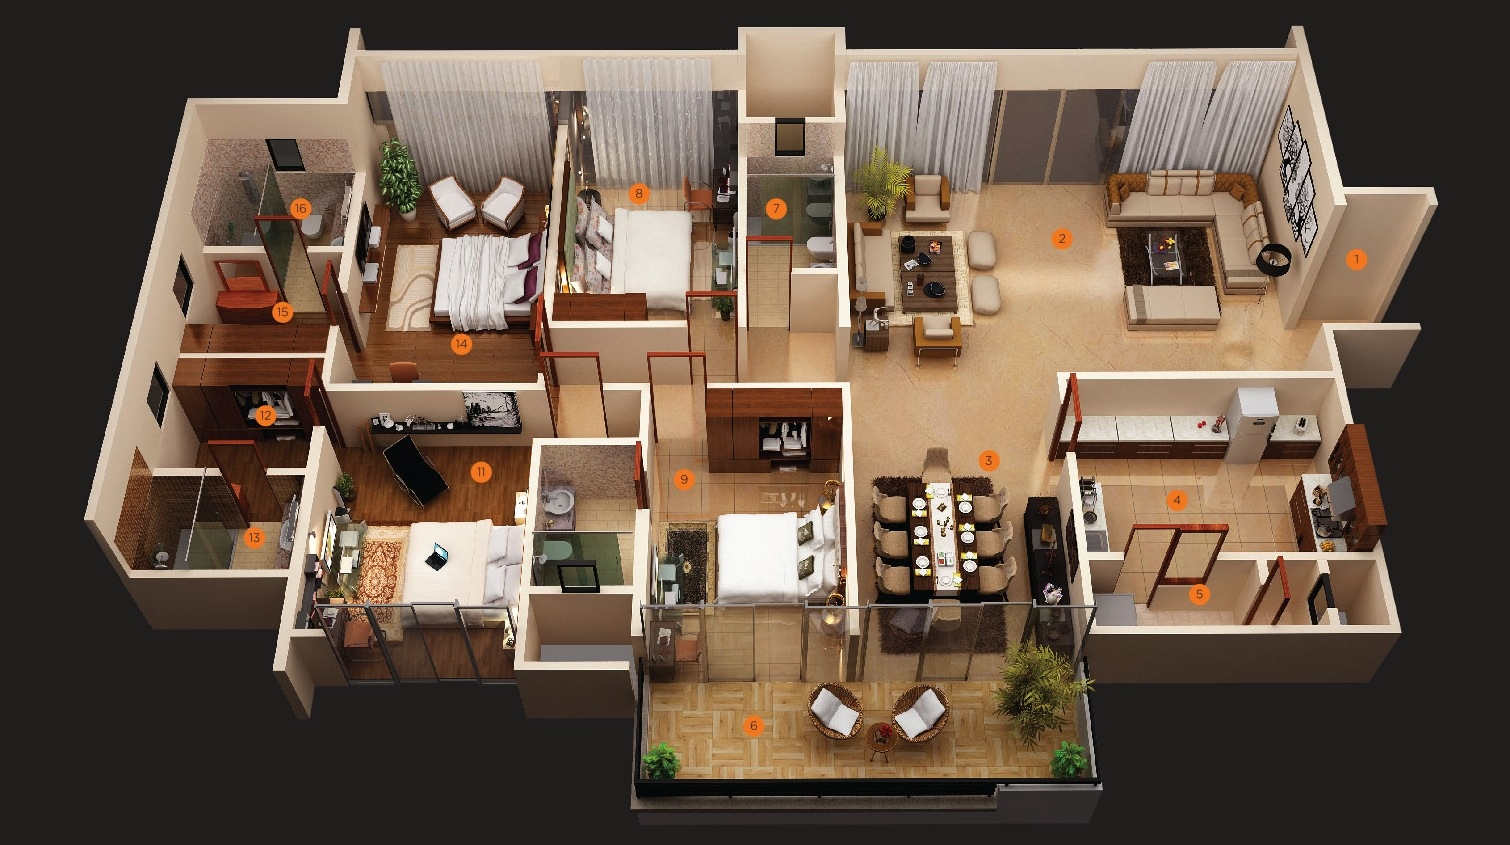 Modern 4 bedroom house plans decor units for 4 bedroom house to build